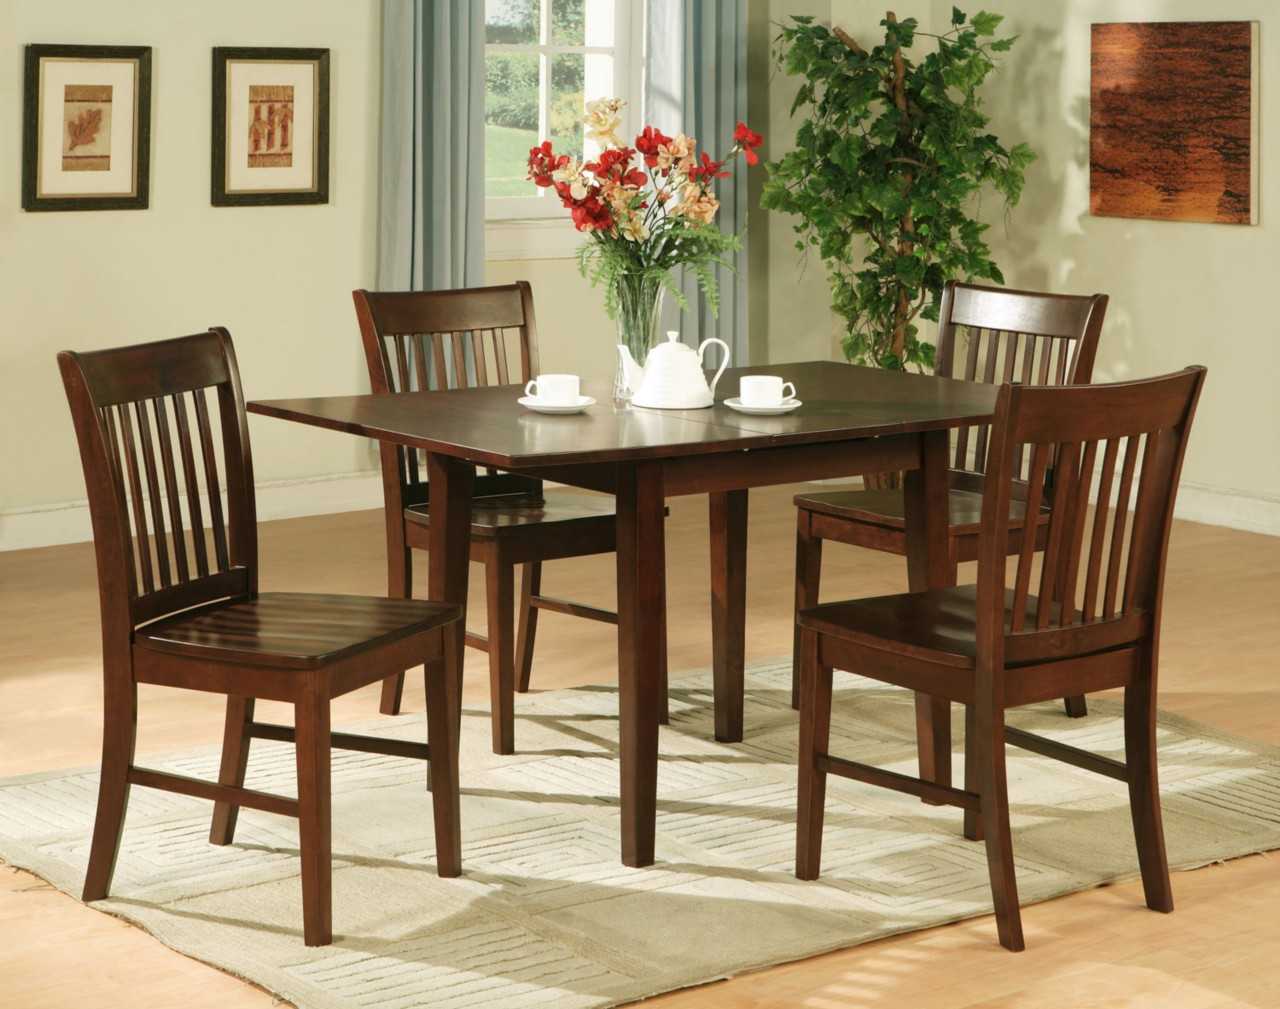 5PC RECTANGULAR KITCHEN DINETTE TABLE 4 CHAIRS MAHOGANY eBay : 481368350o from www.ebay.com size 1280 x 1009 jpeg 256kB